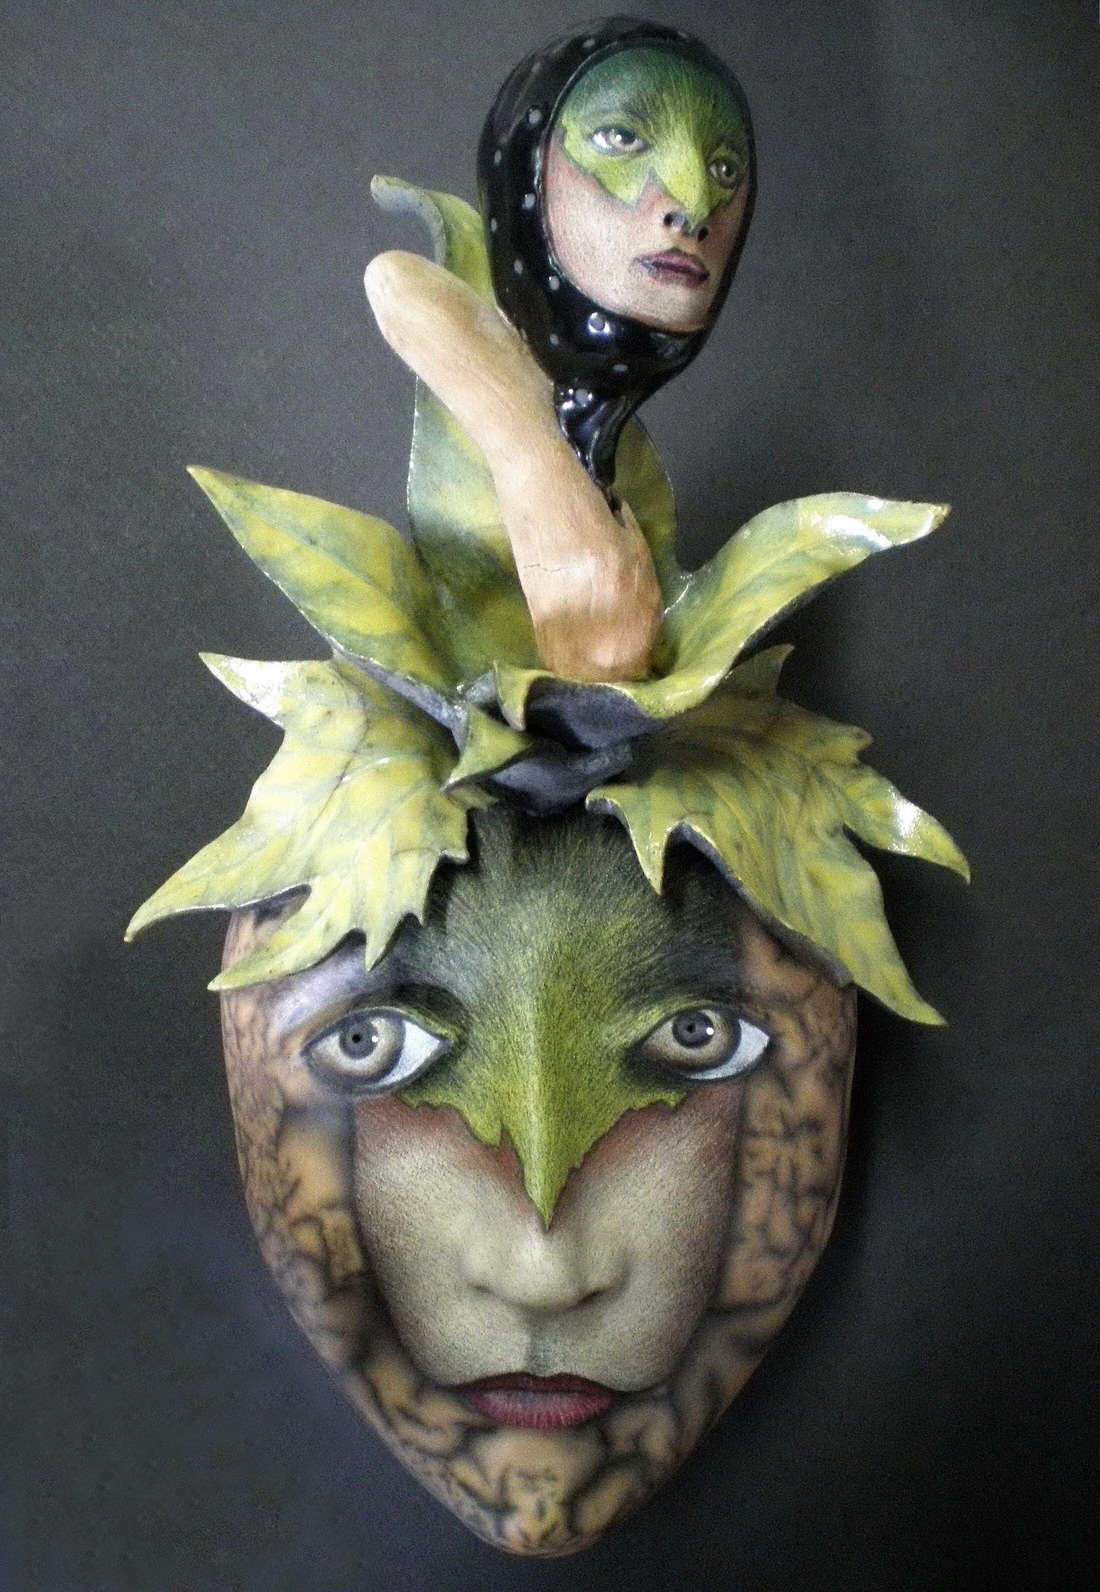 behind the mask: 2010